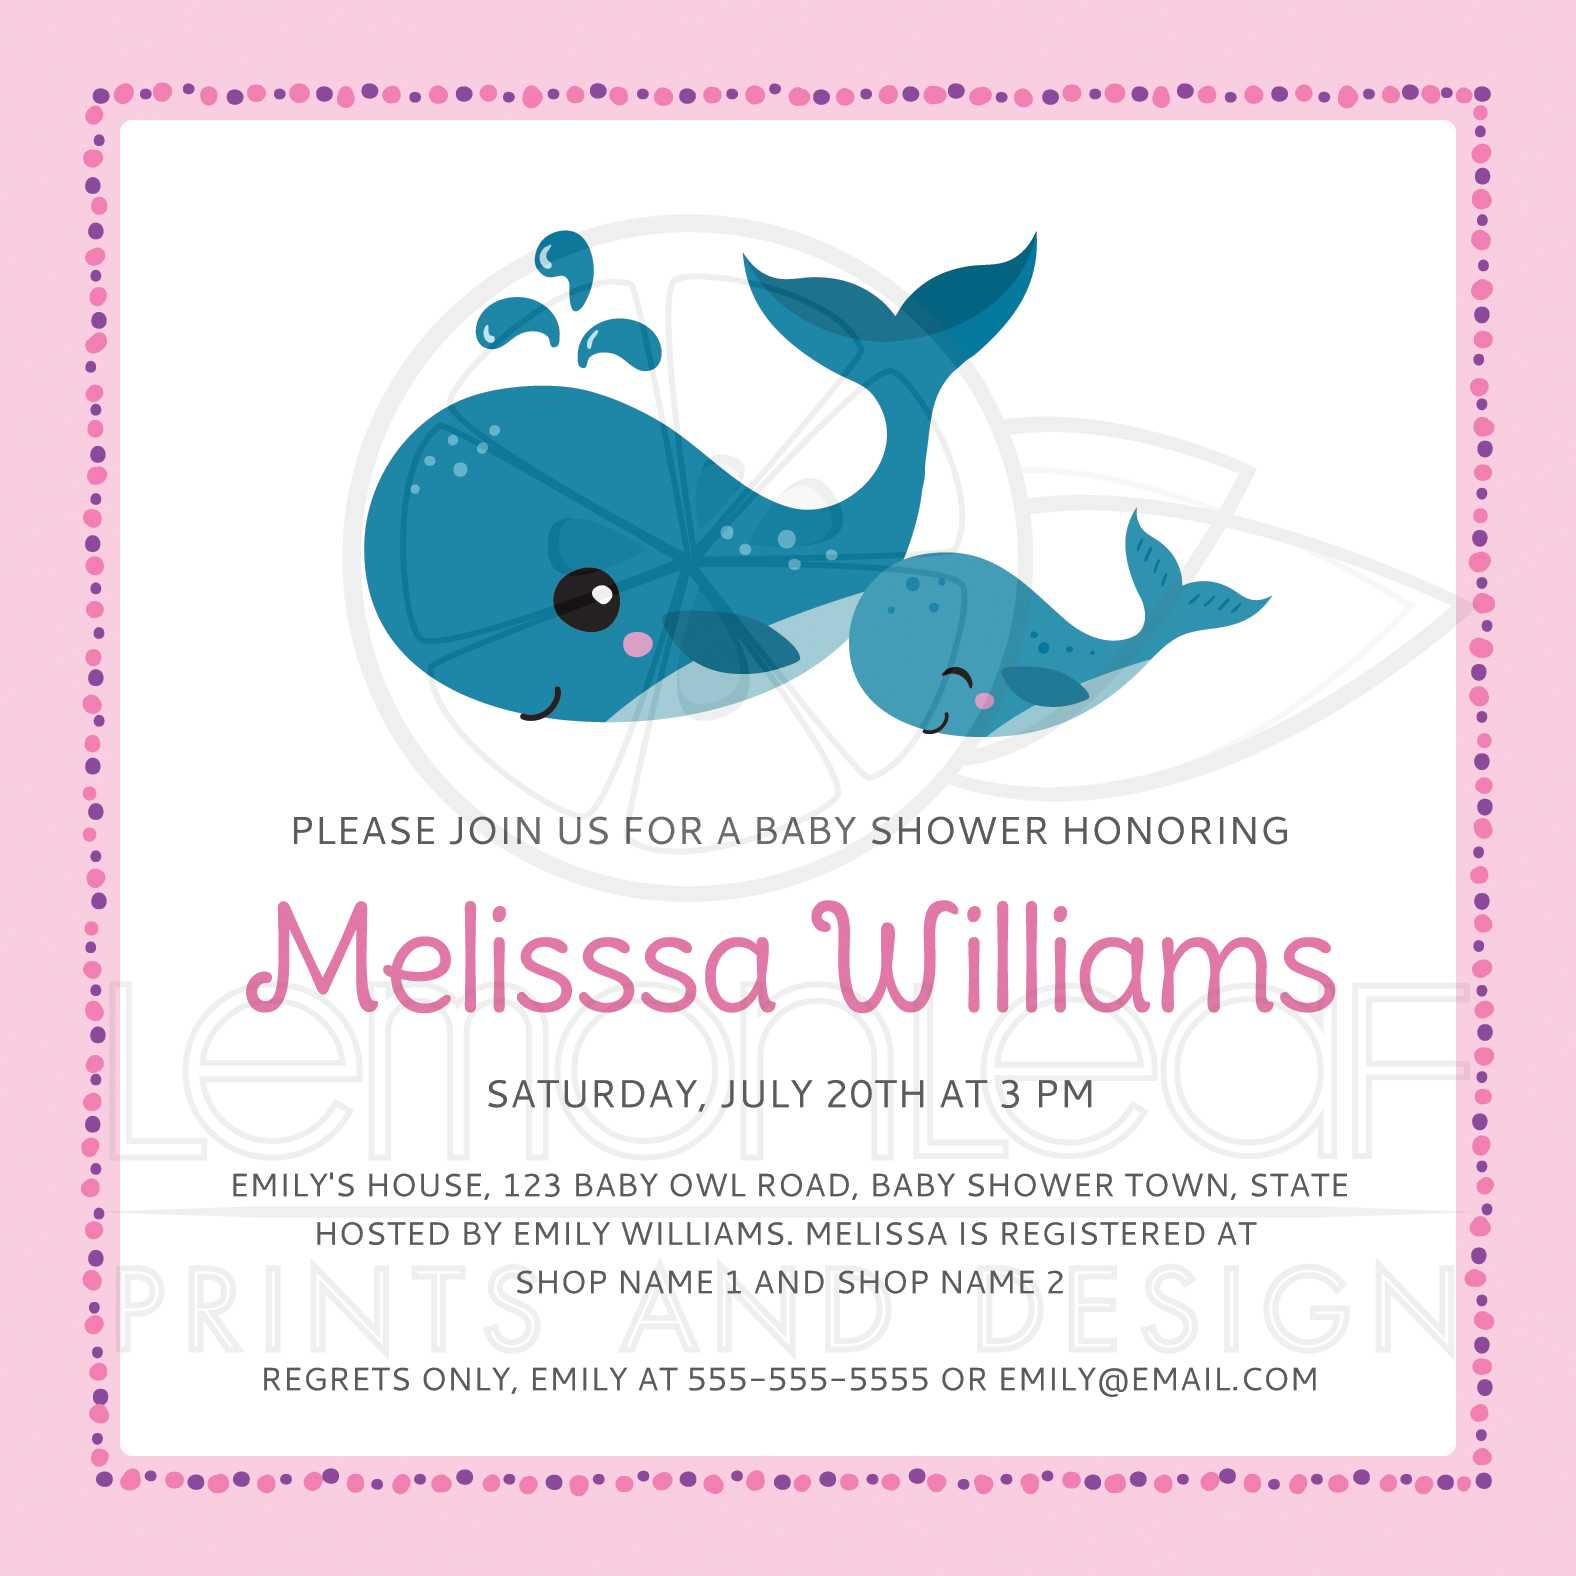 Mommy and baby whales cute pink baby shower invitation for girls mommy and baby whales cute pink baby shower invitation for girls under the sea theme filmwisefo